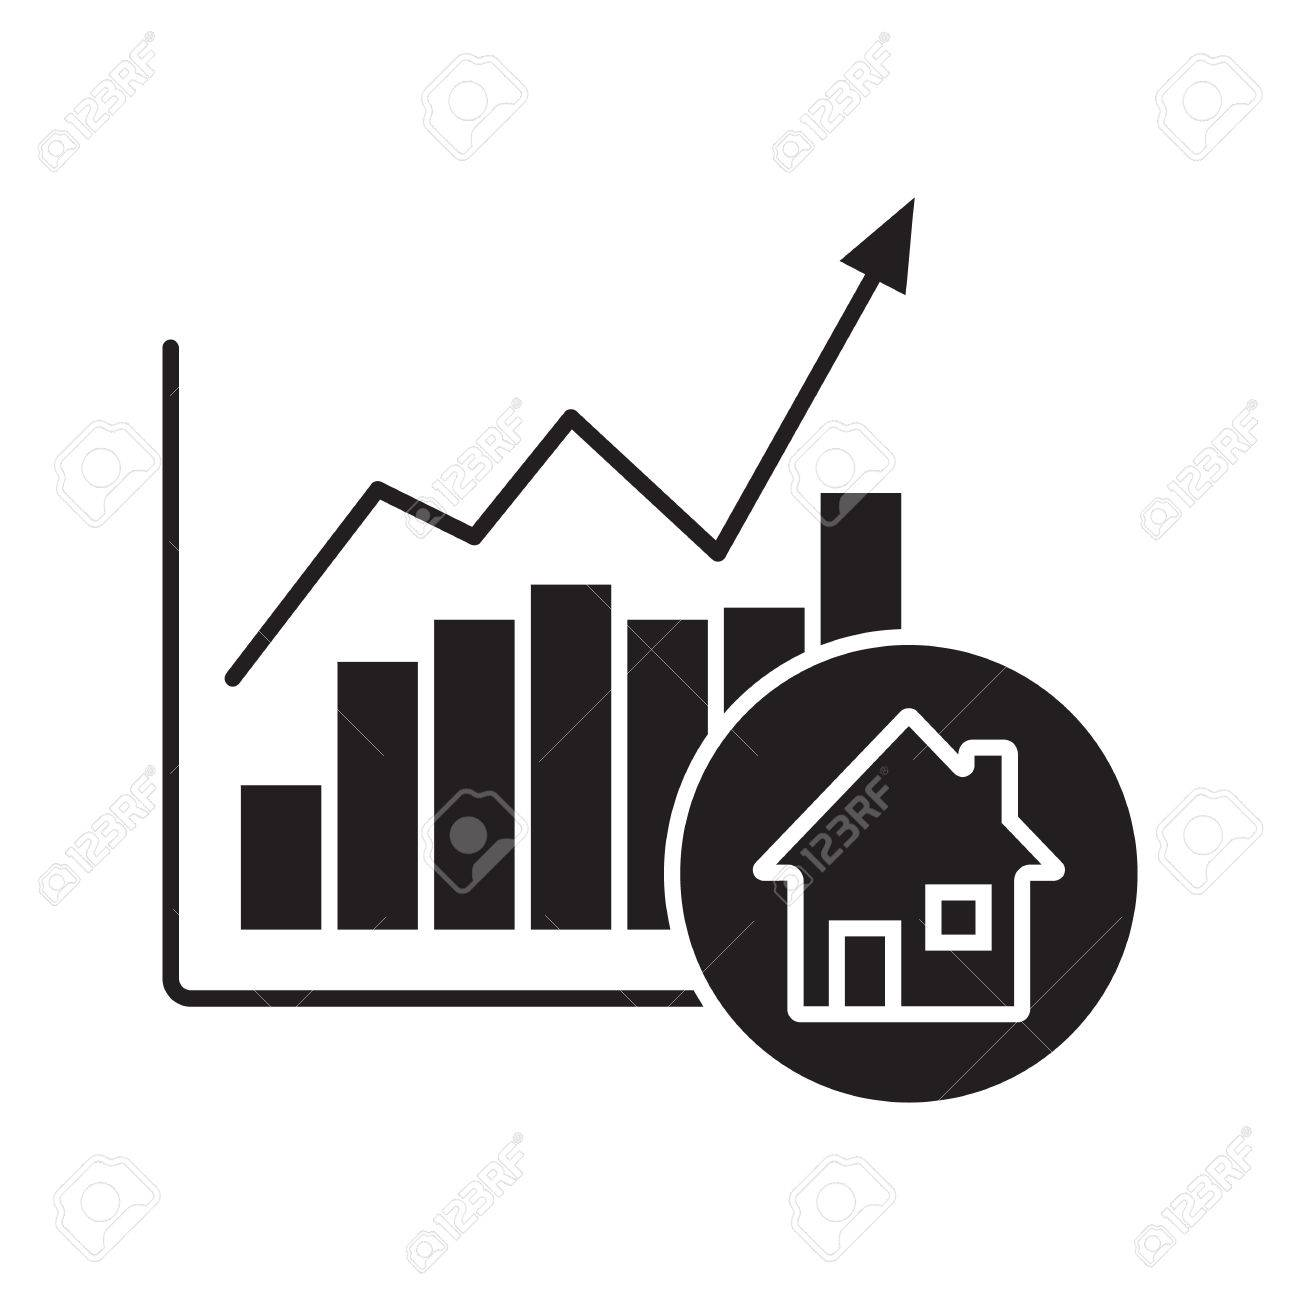 Real estate market growth chart glyph icon silhouette symbol real estate market growth chart glyph icon silhouette symbol houses price rise negative biocorpaavc Image collections